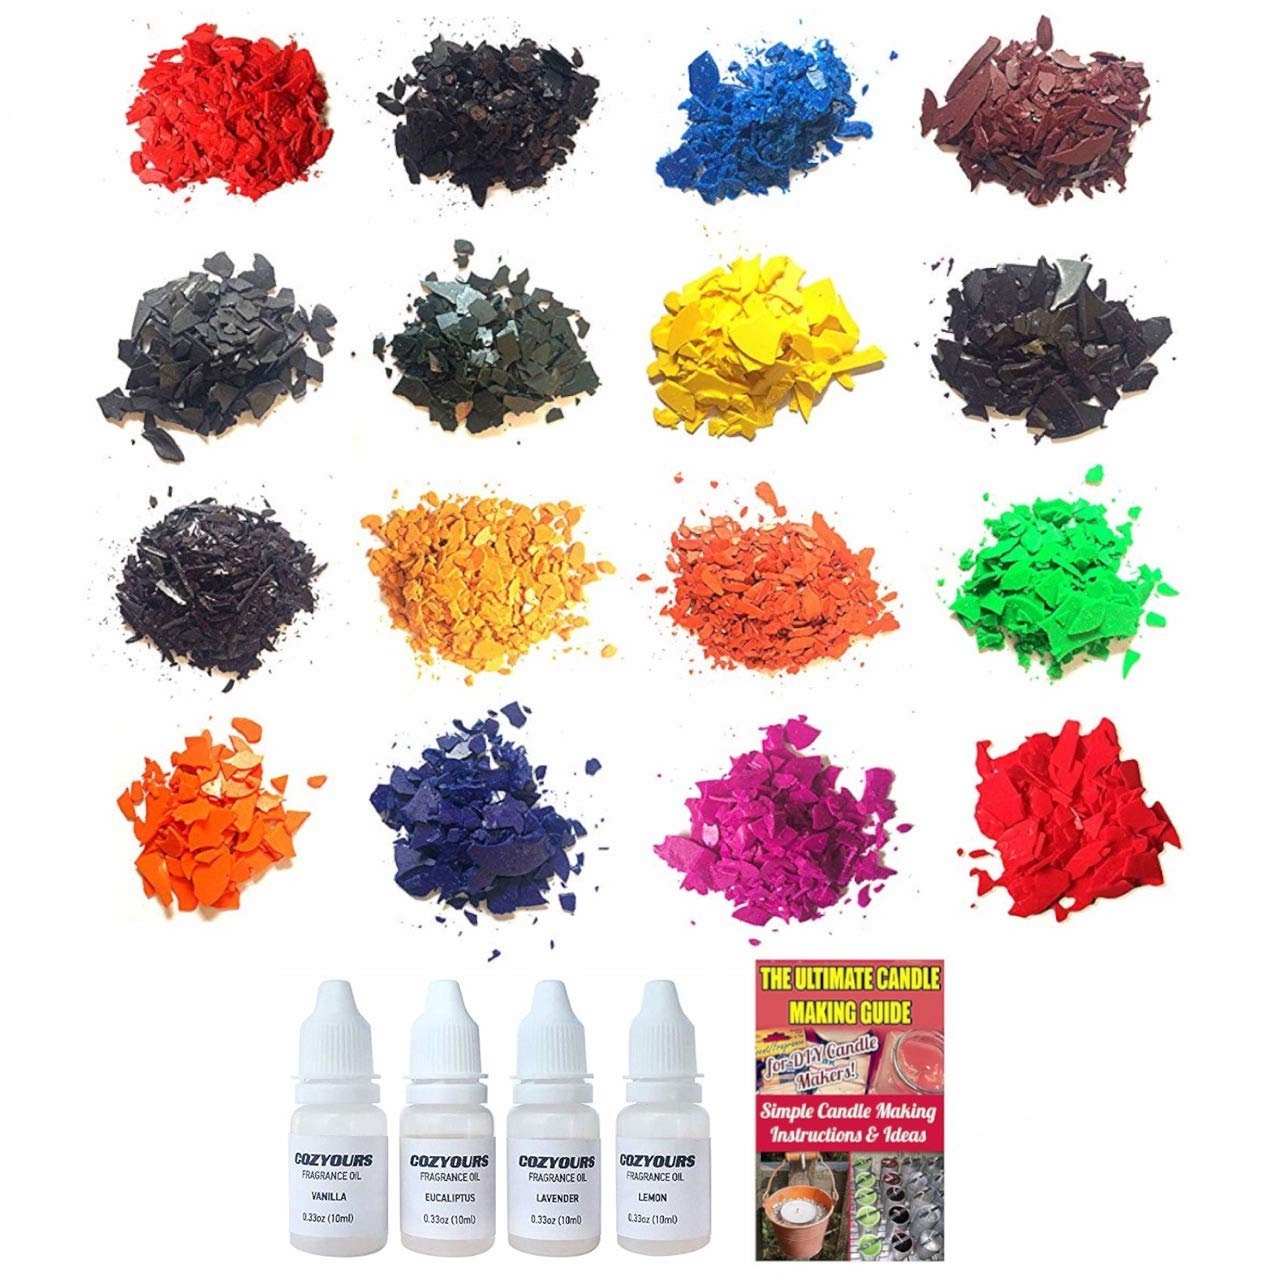 COZYOURS Colored Candle Wax Dye Flakes & Fragrance Oils, 16/4 Pack; Candle DIY Hacks E-Book Included!